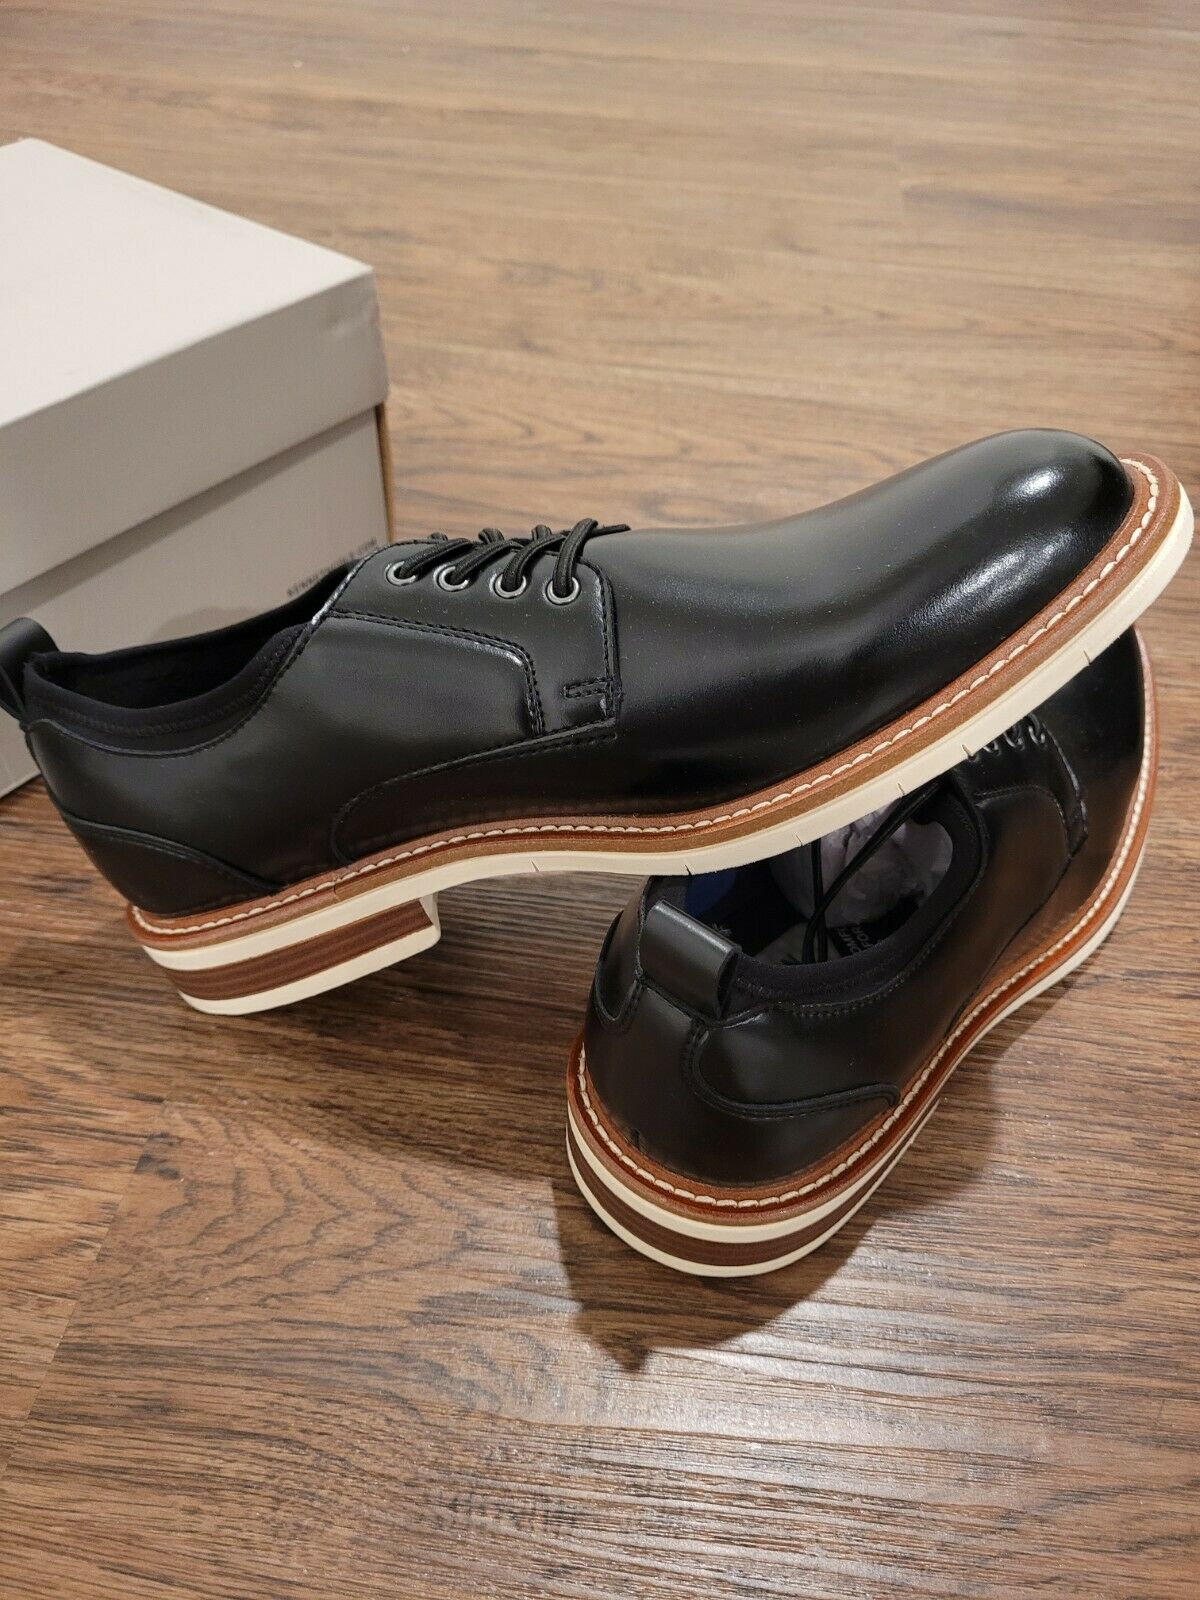 Kenneth Cole REACTION Men's Klay Lace Up G with a Flexible Sole OxfordSize 9.5